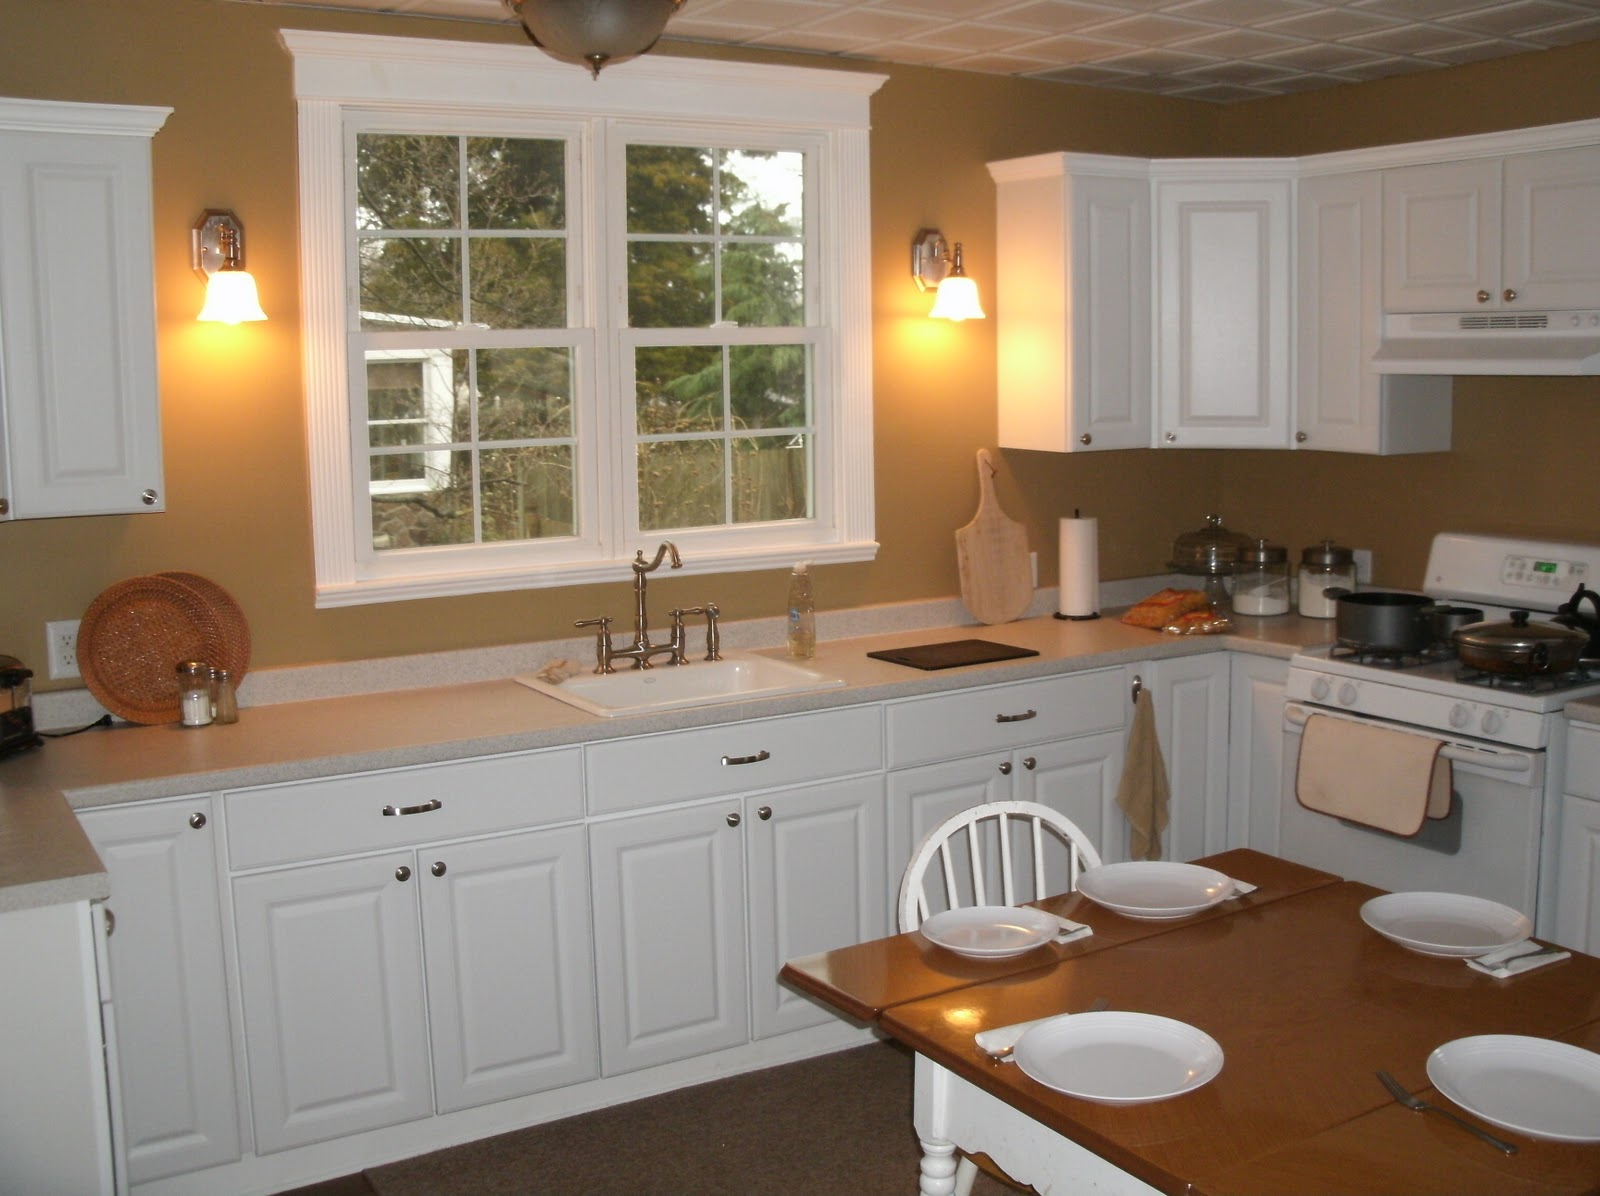 delightful How Much To Remodel A Small Kitchen #9: how much to remodel small kitchen photo - 2